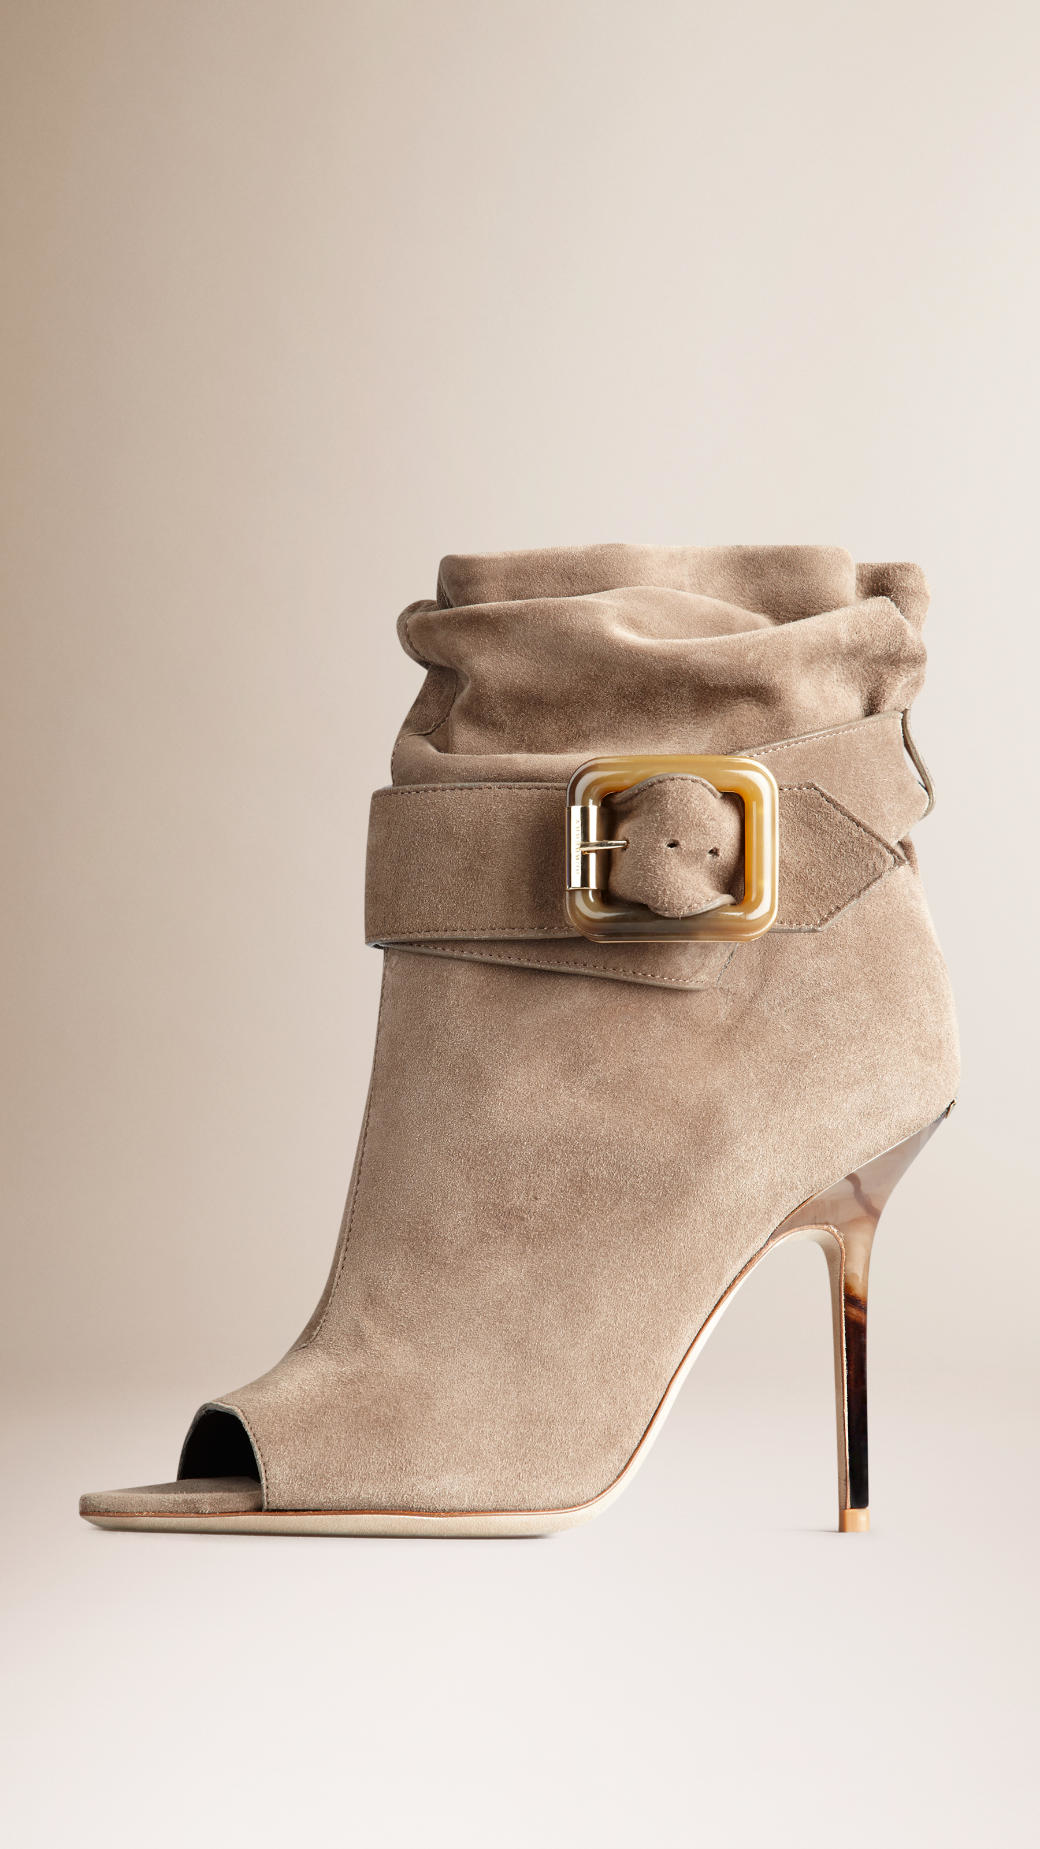 eaba60b8e09 Lyst - Burberry Buckle Detail Suede Peep-toe Ankle Boots in Natural